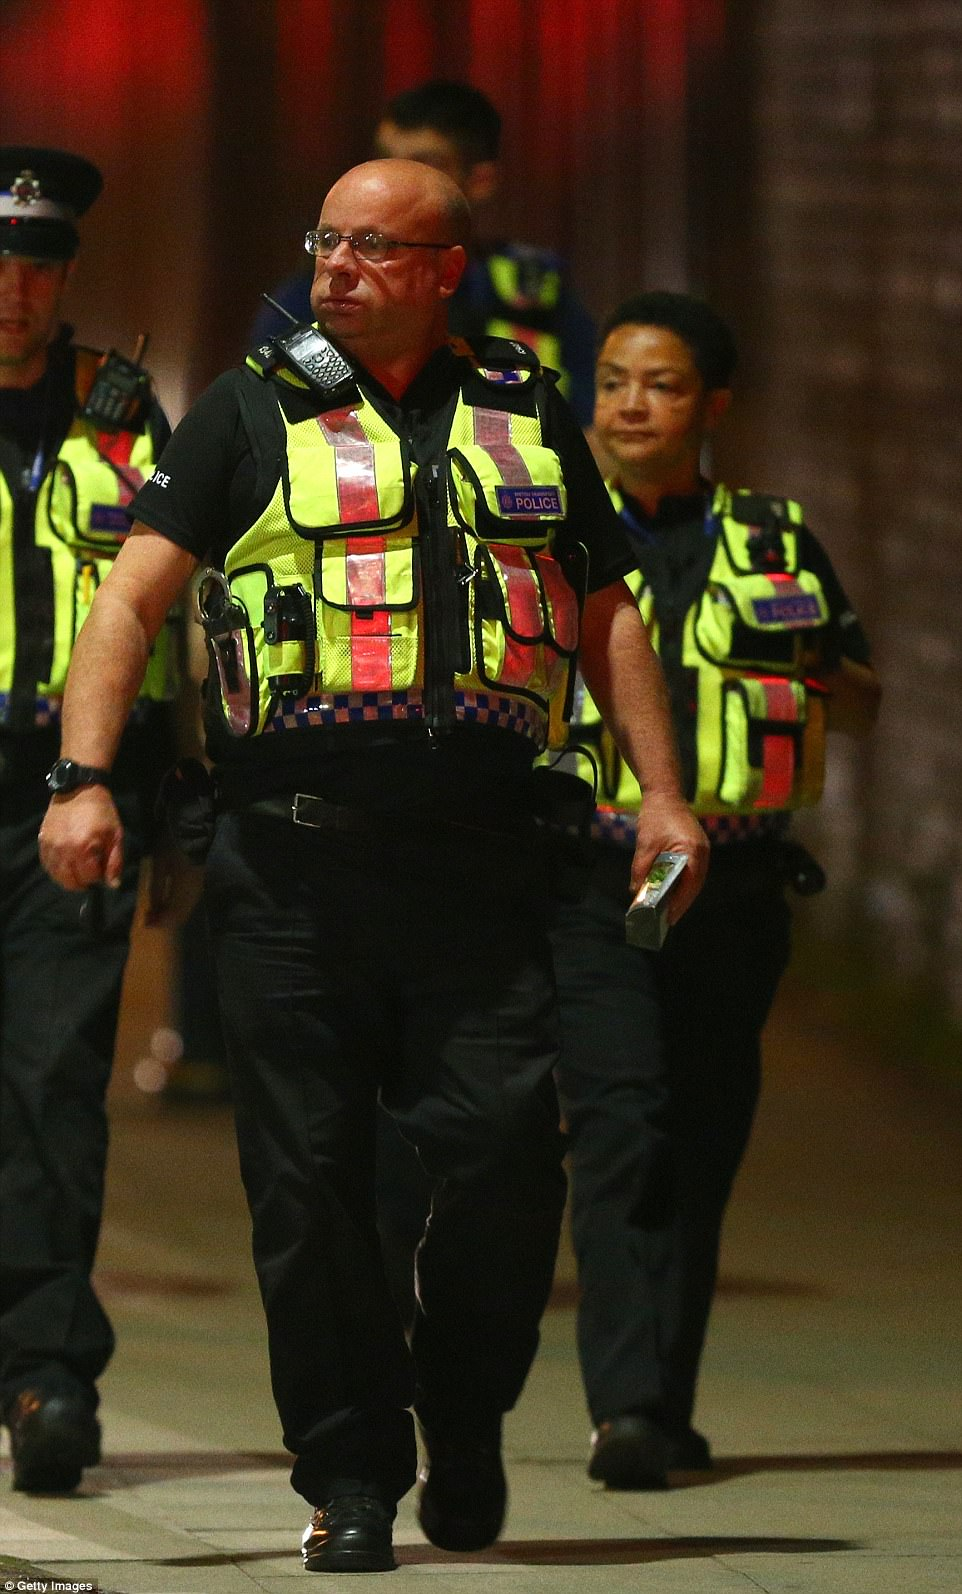 Greater Manchester Police has been widely praised for its fast reaction to the incident by commentators across the world